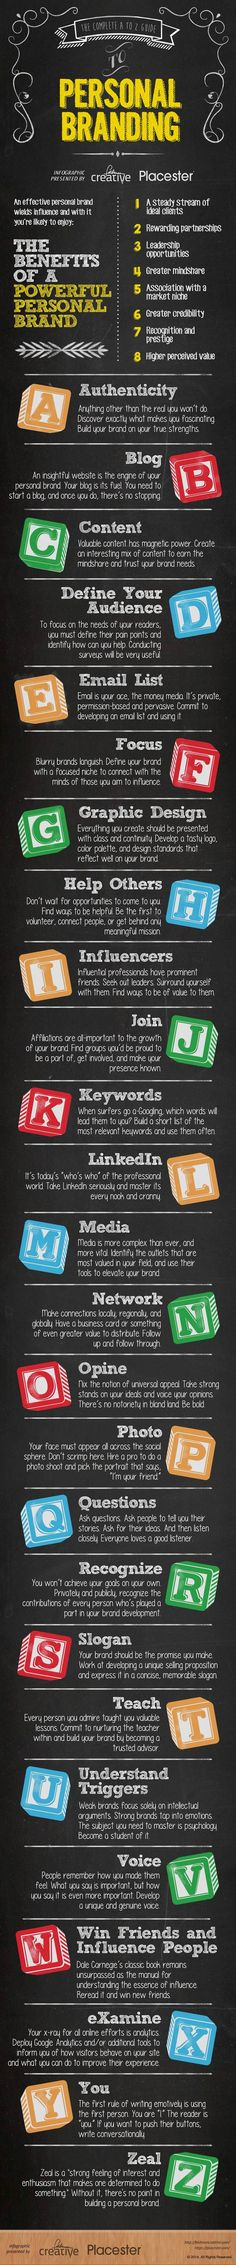 Food infographic The complete A to Z guide to personal branding. Infographic Description The complete A to Z guide to personal branding - Infographic Business Branding, Business Marketing, Content Marketing, Internet Marketing, Online Marketing, Social Media Marketing, Marketing Ideas, Business Tips, Marketing Strategies